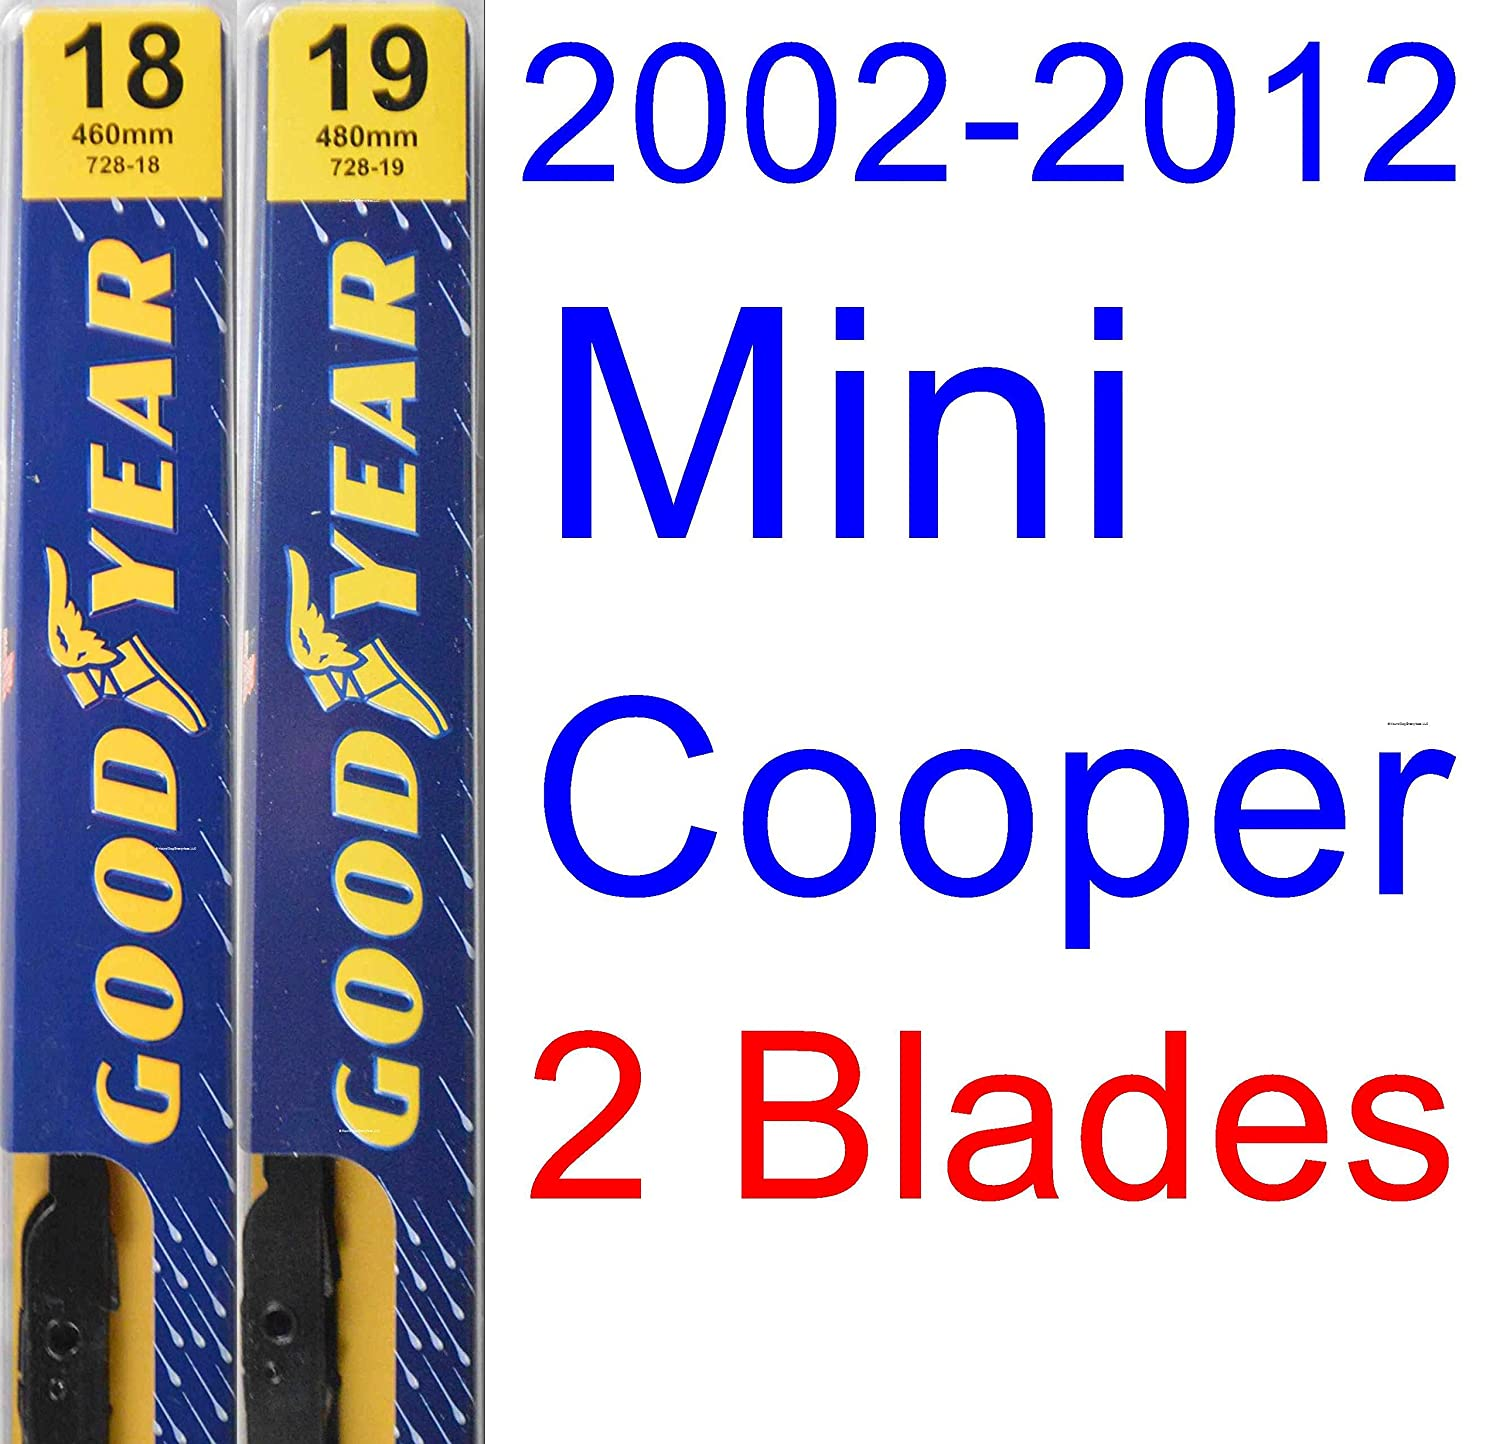 Amazon.com: 2002-2012 Mini Cooper Replacement Wiper Blade Set/Kit (Set of 2  Blades) (Goodyear Wiper Blades-Premium)  (2003,2004,2005,2006,2007,2008,2009,2010 ...